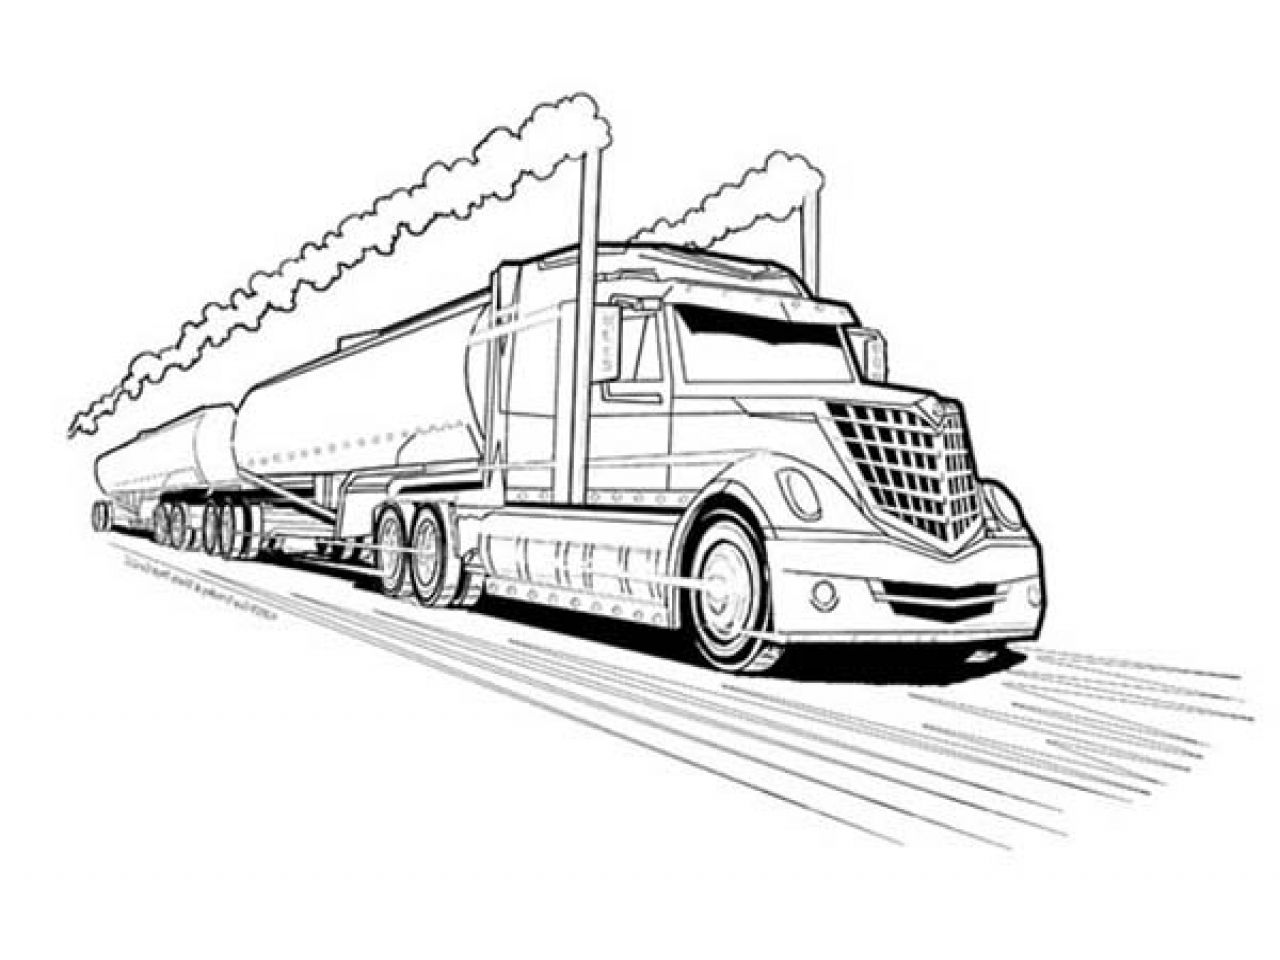 Tractor Trailor and Coloring Sheets, double tanker trailer